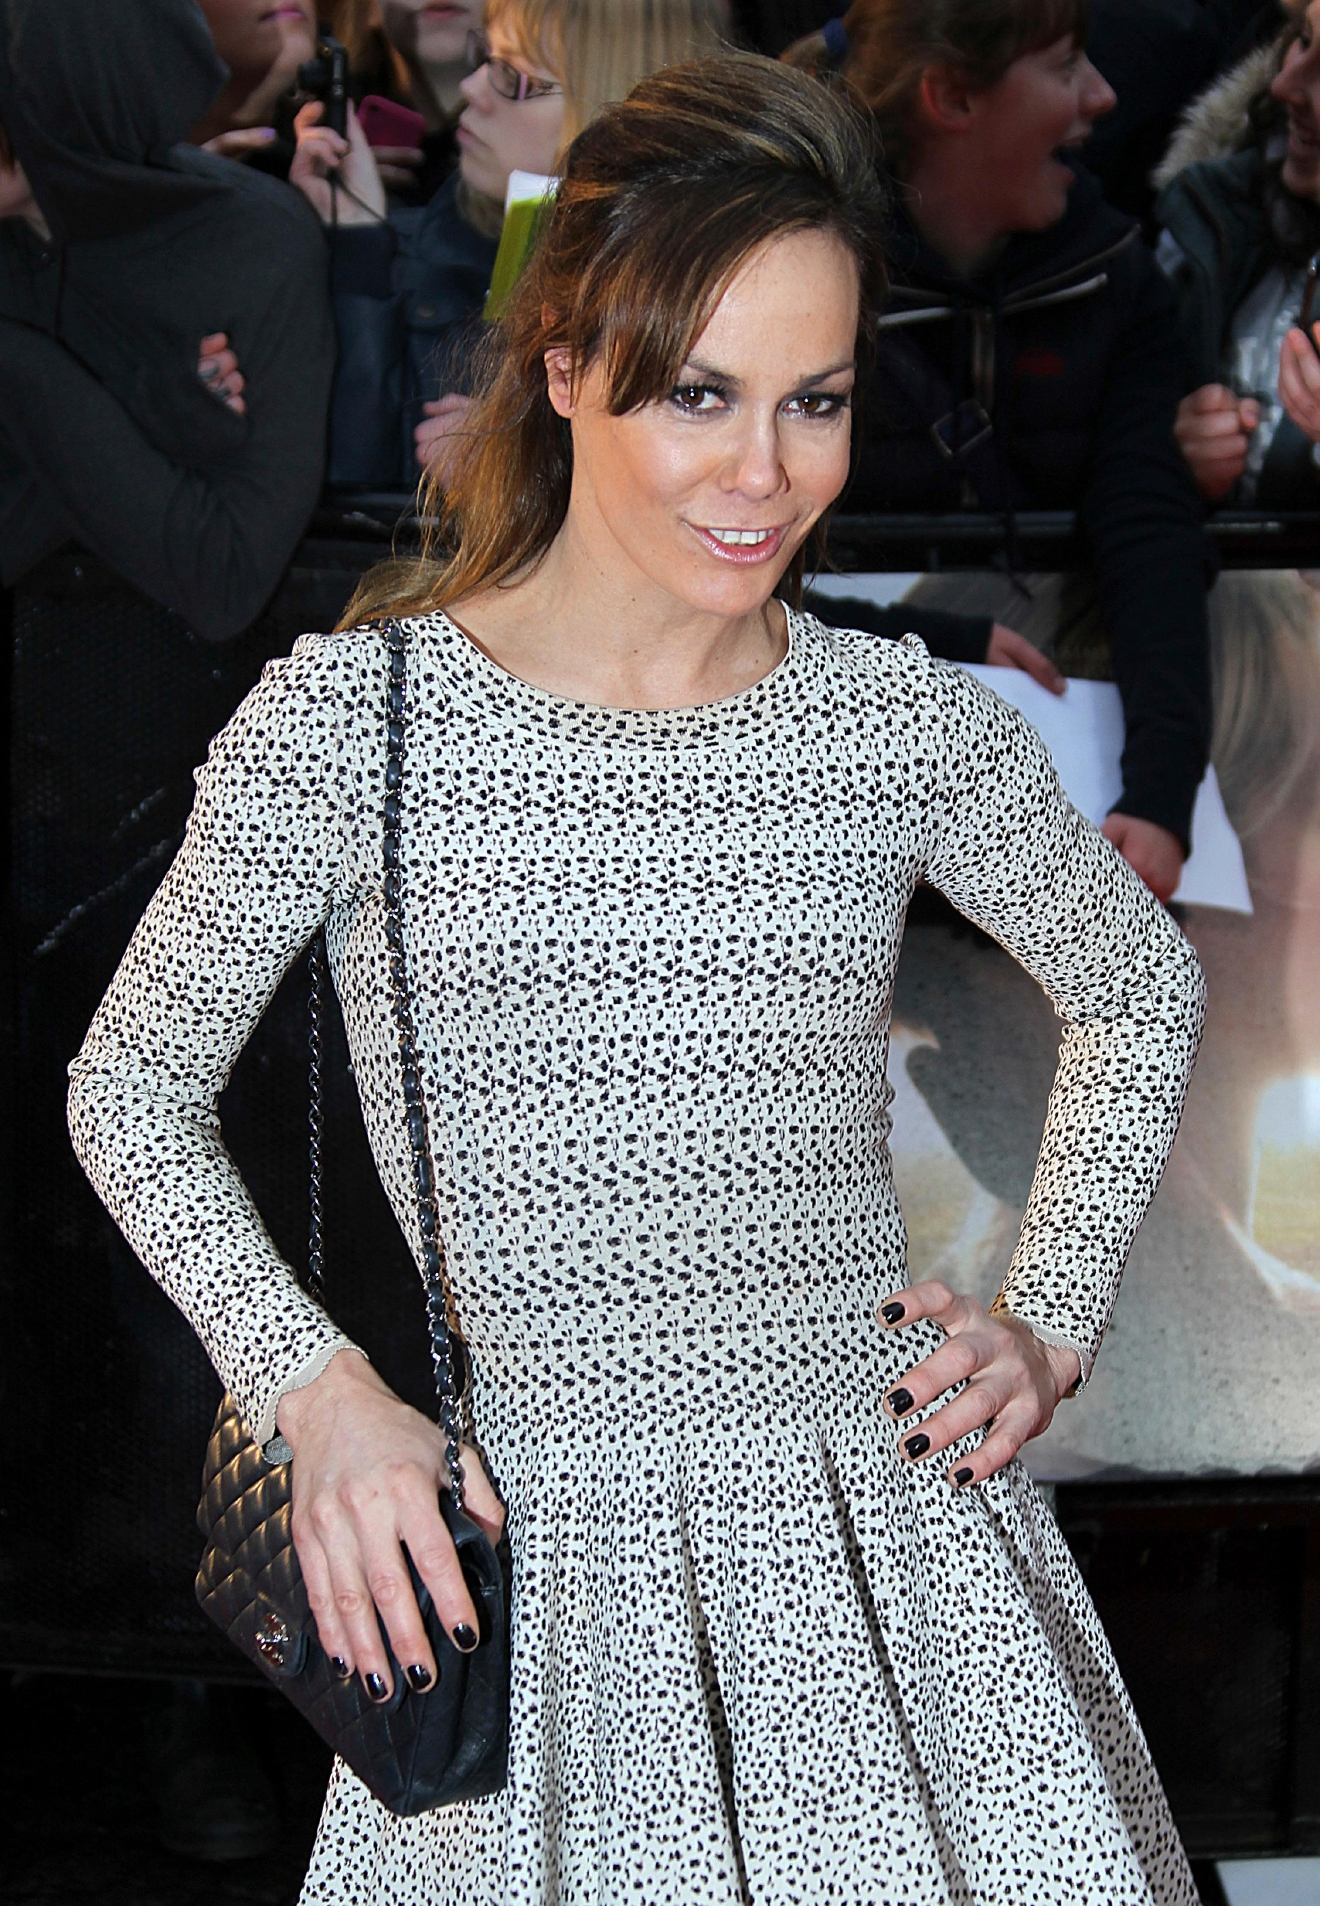 "FILE - A Monday, April 23, 2012 file photo of British socialite and goddaughter of Britain's Prince Charles, Tara Palmer-Tomkinson arriving for the European Premiere of 'The Lucky One' at the Bluebird restaurant in London. Palmer-Tomkinson,has been found dead in her London home. She was 45. Prince Charles said in a statement Wednesday, Feb.8, 2017, that he and his wife, the Duchess of Cornwall, are ""deeply saddened"" by news of her death. The cause of death was not immediately clear, though she revealed last year that she had been diagnosed with a brain tumor. (AP Photo/Joel Ryan, File)"